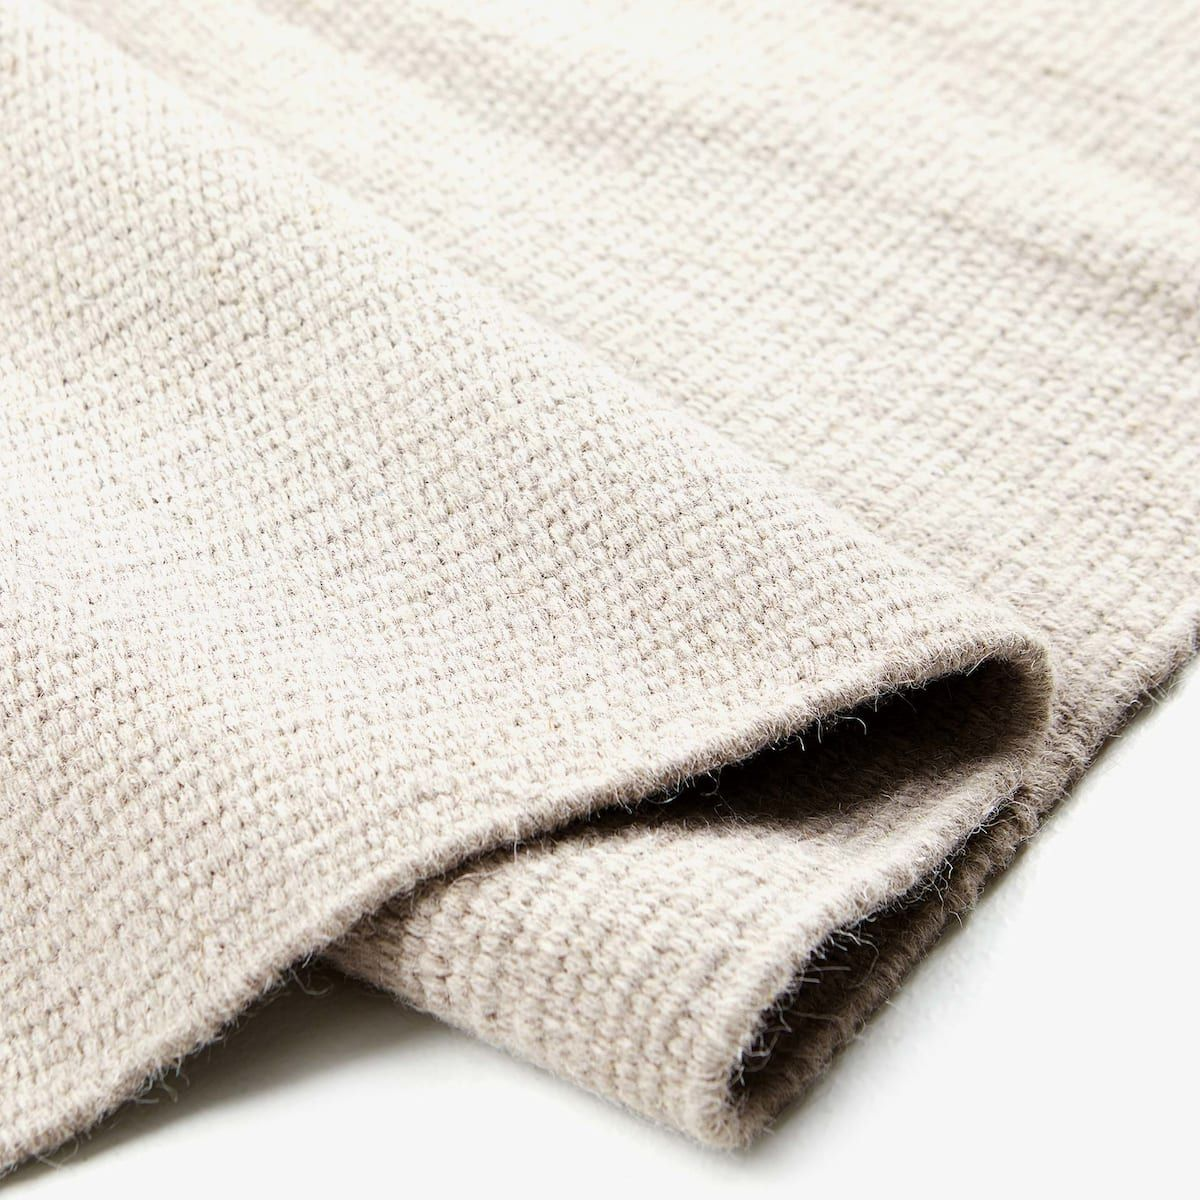 Image 2 of the product WOVEN RUG WITH FRINGE Woven rug